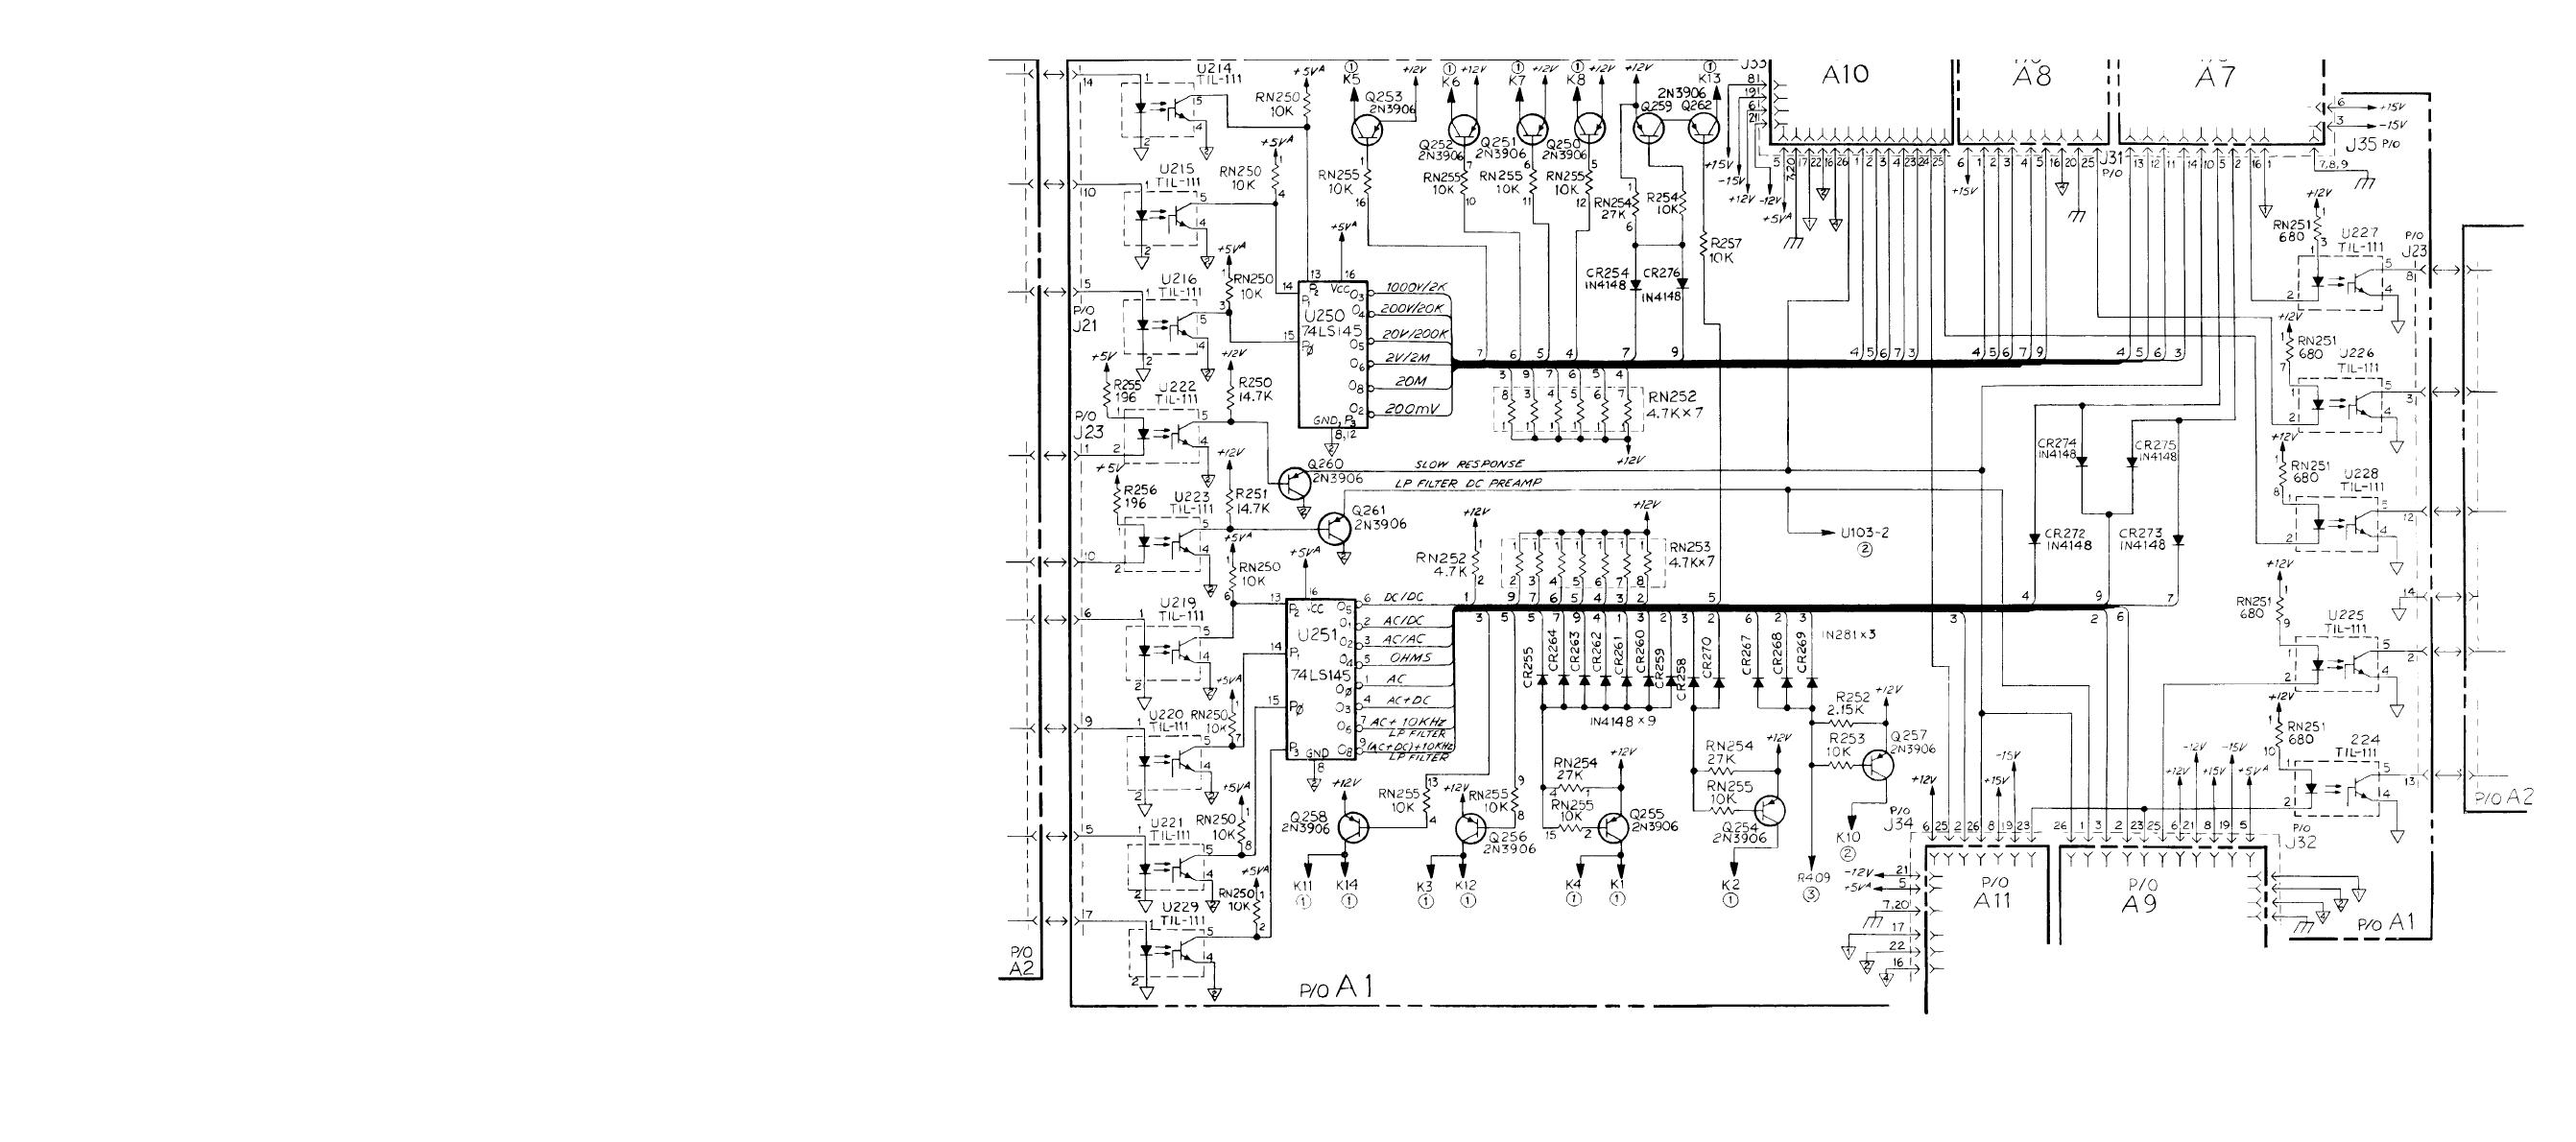 Figure FO-6. Relay Switching Circuits (A1) Schematic Diagram